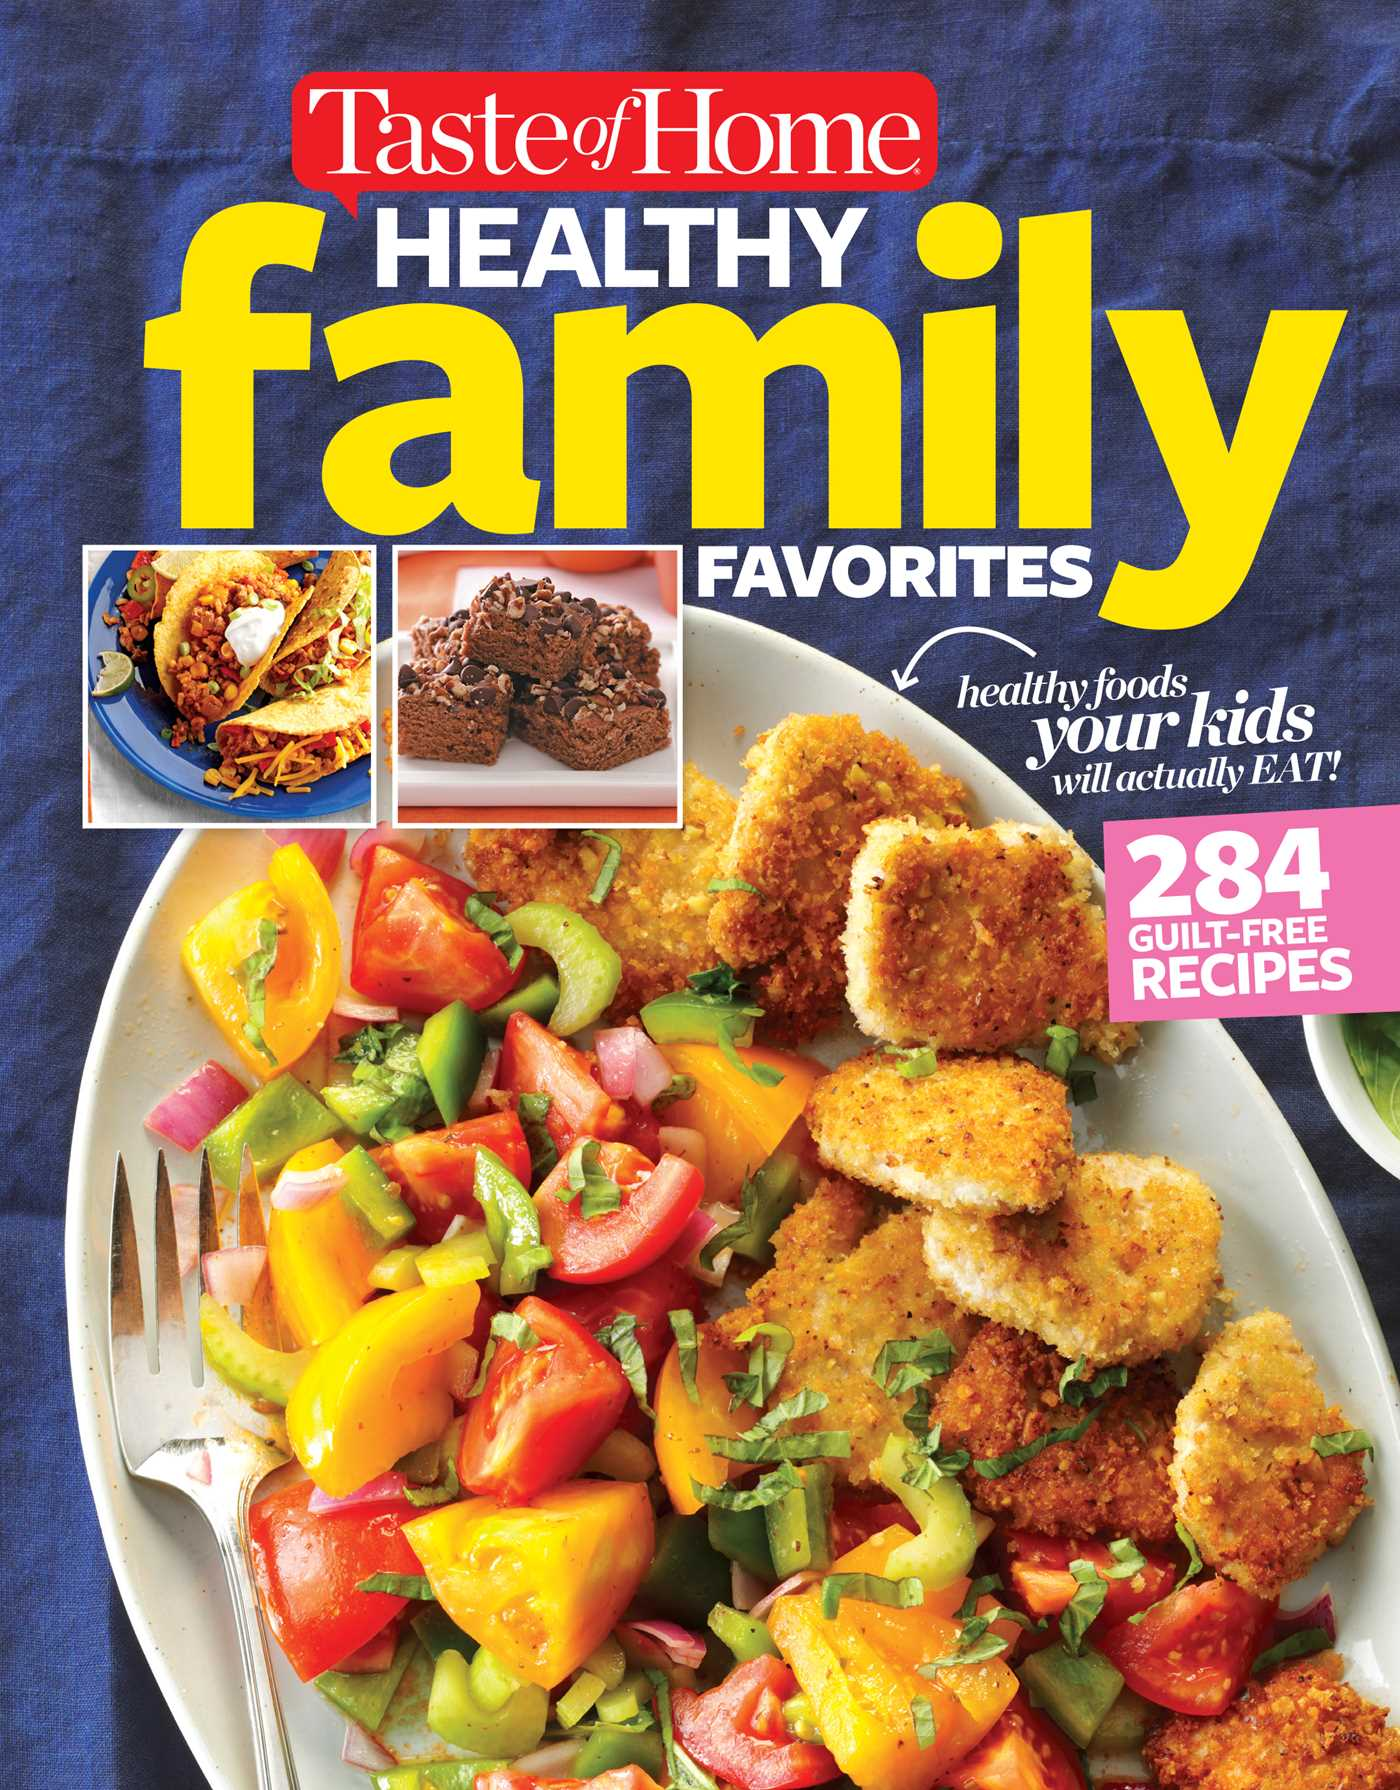 Taste of home healthy family favorites cookbook 9781617657191 hr